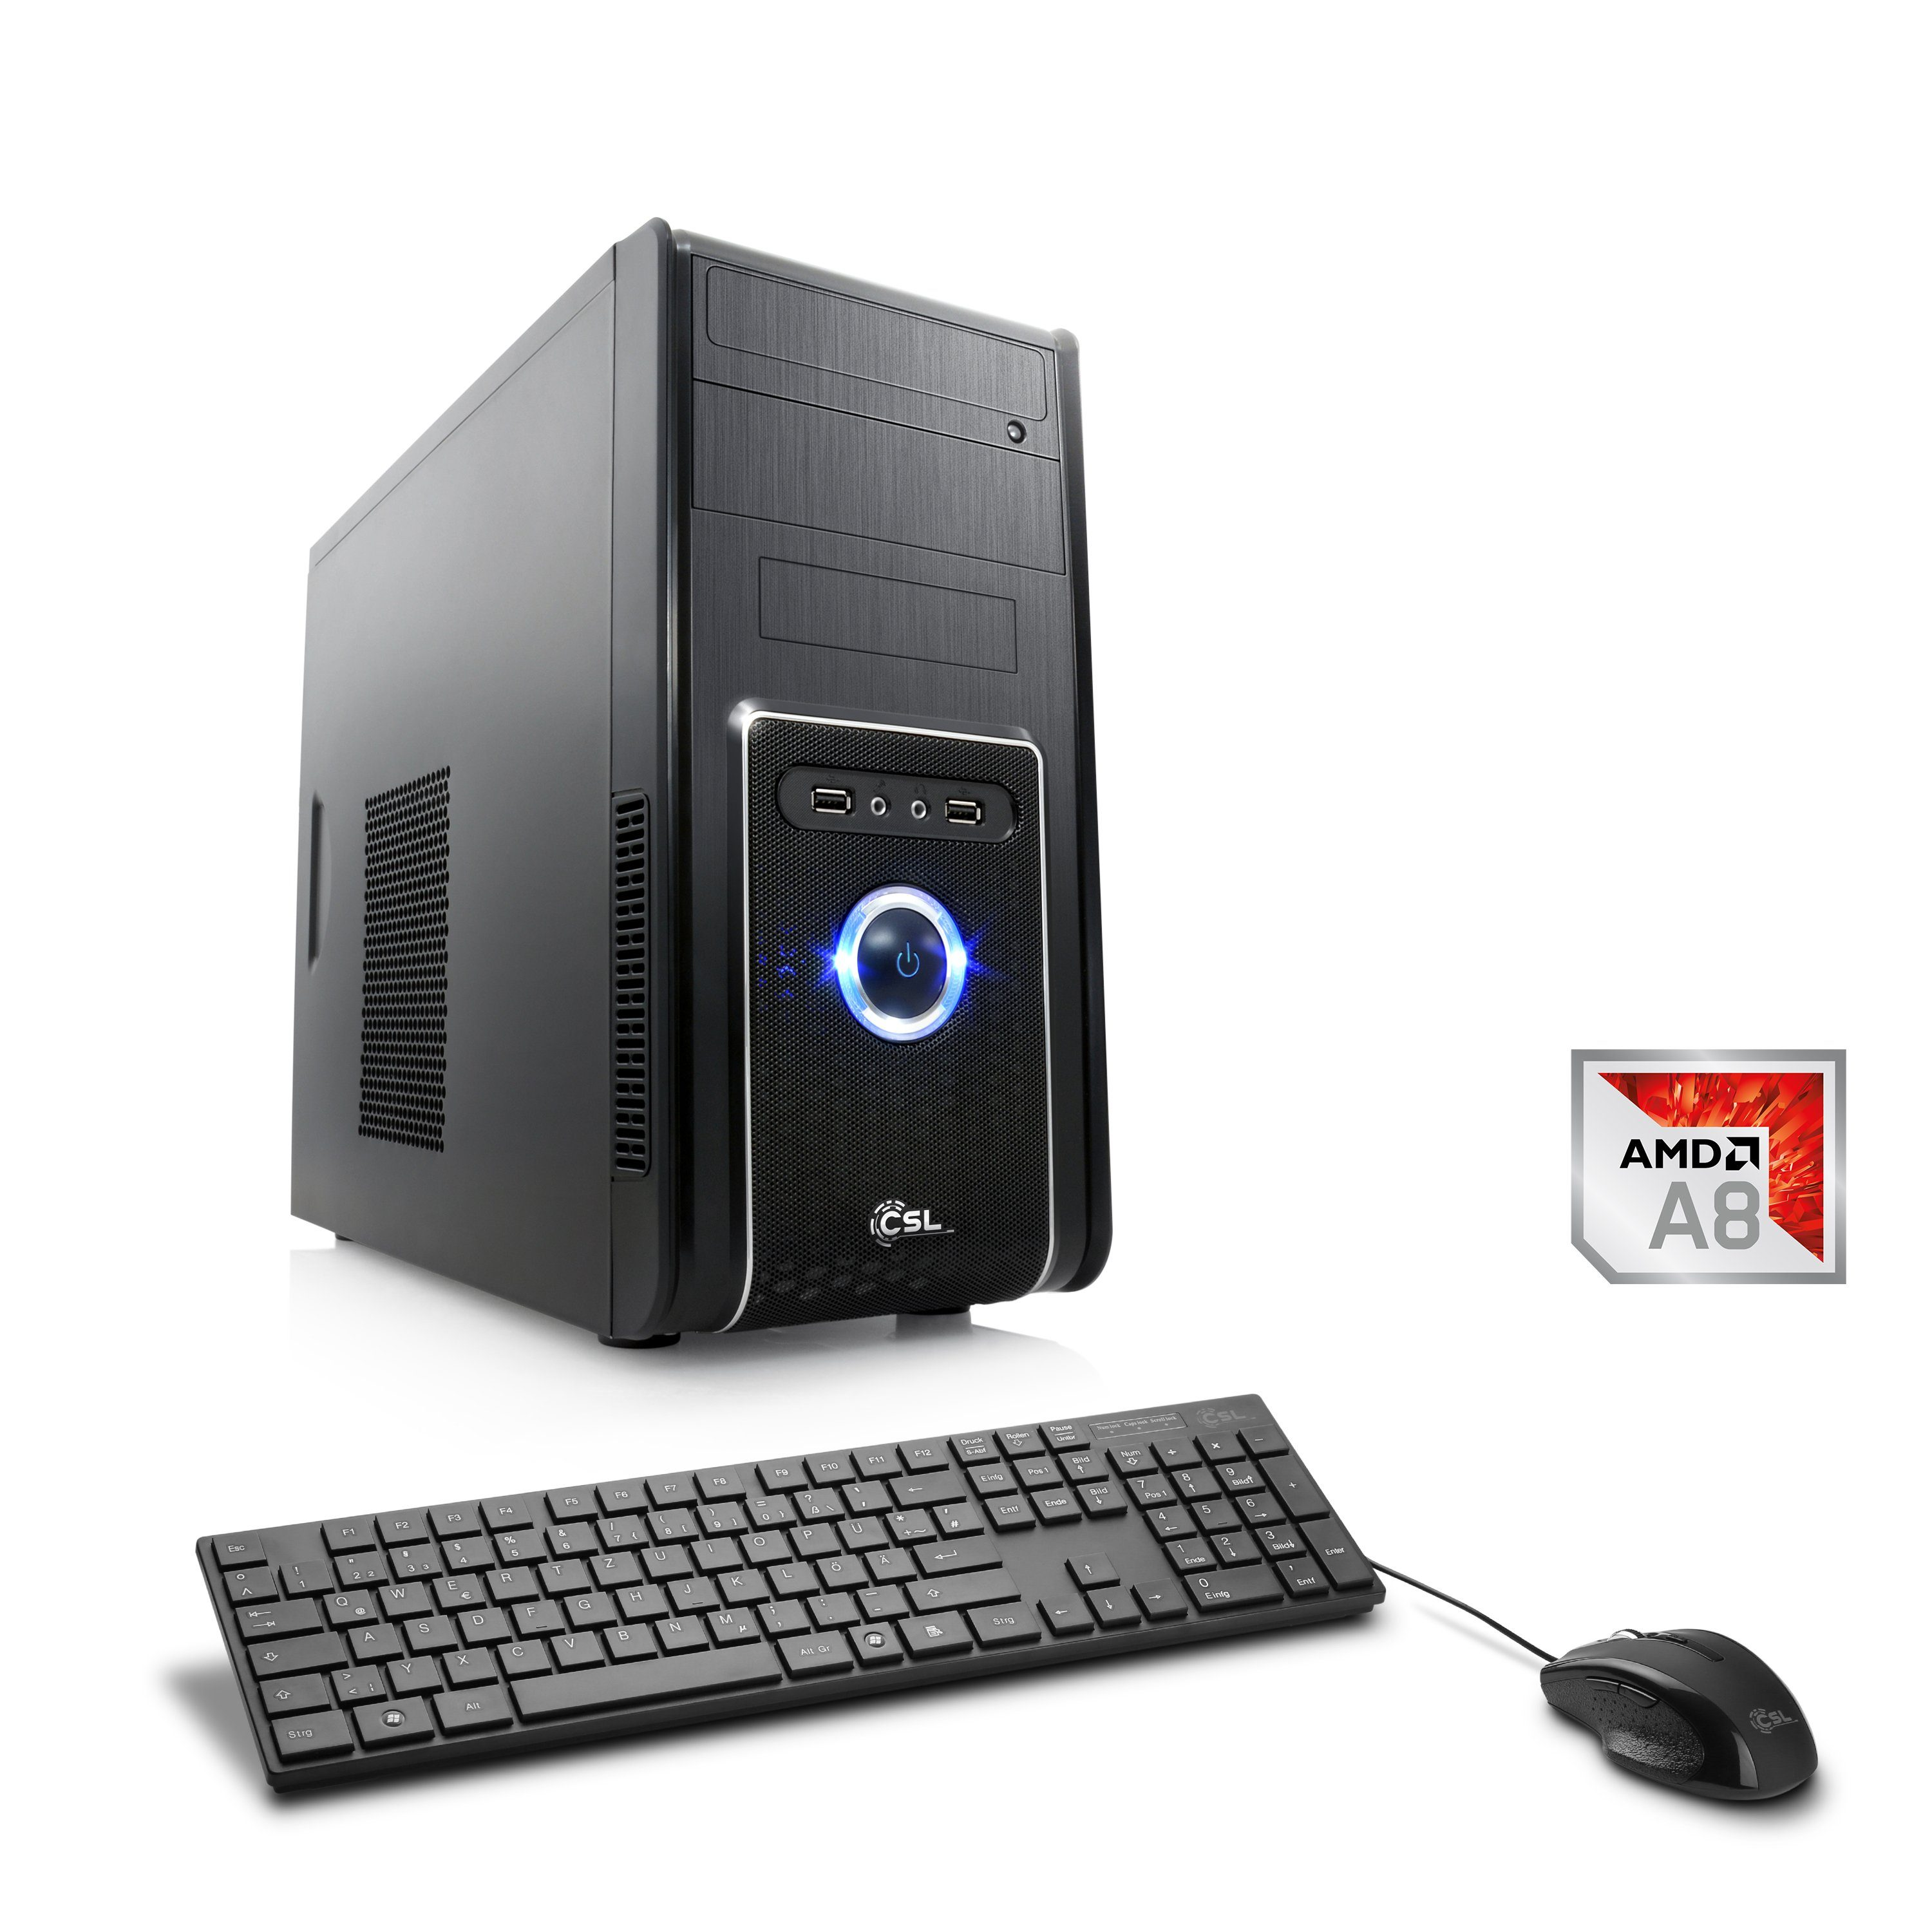 CSL Multimedia PC | AMD A8-9600 | Radeon R7 | 4 GB DDR4 RAM »Sprint T4111 Windows 10 Home«